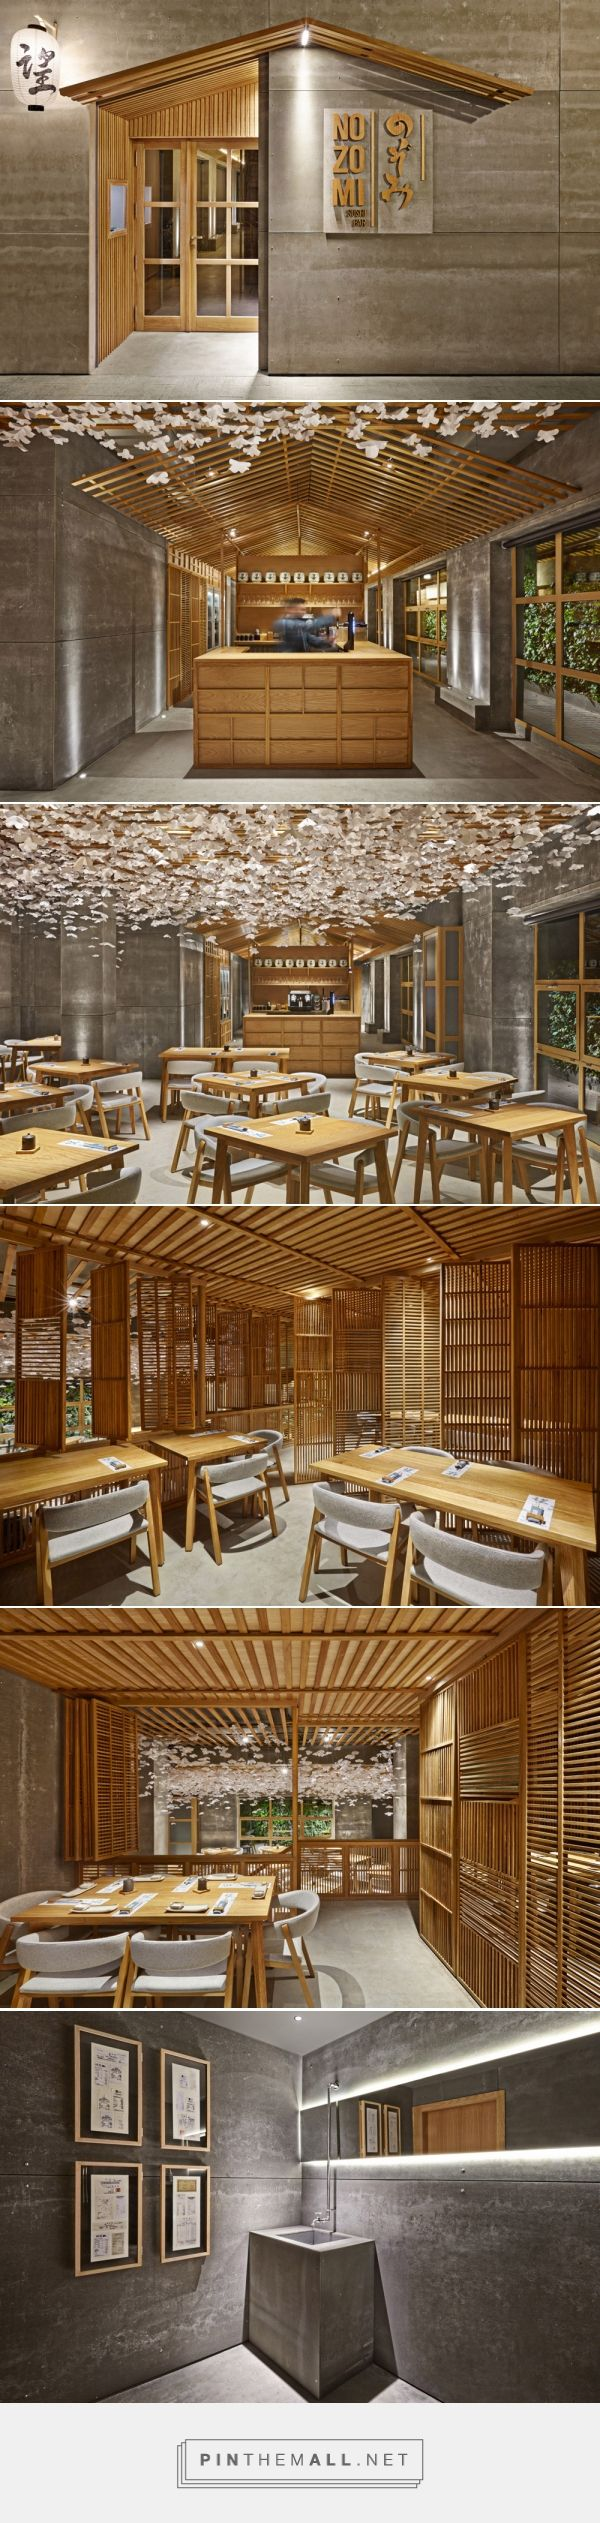 Nozomi Bar Sushi Restaurant in Valencia 2015 • Selectism - created via http://pinthemall.net